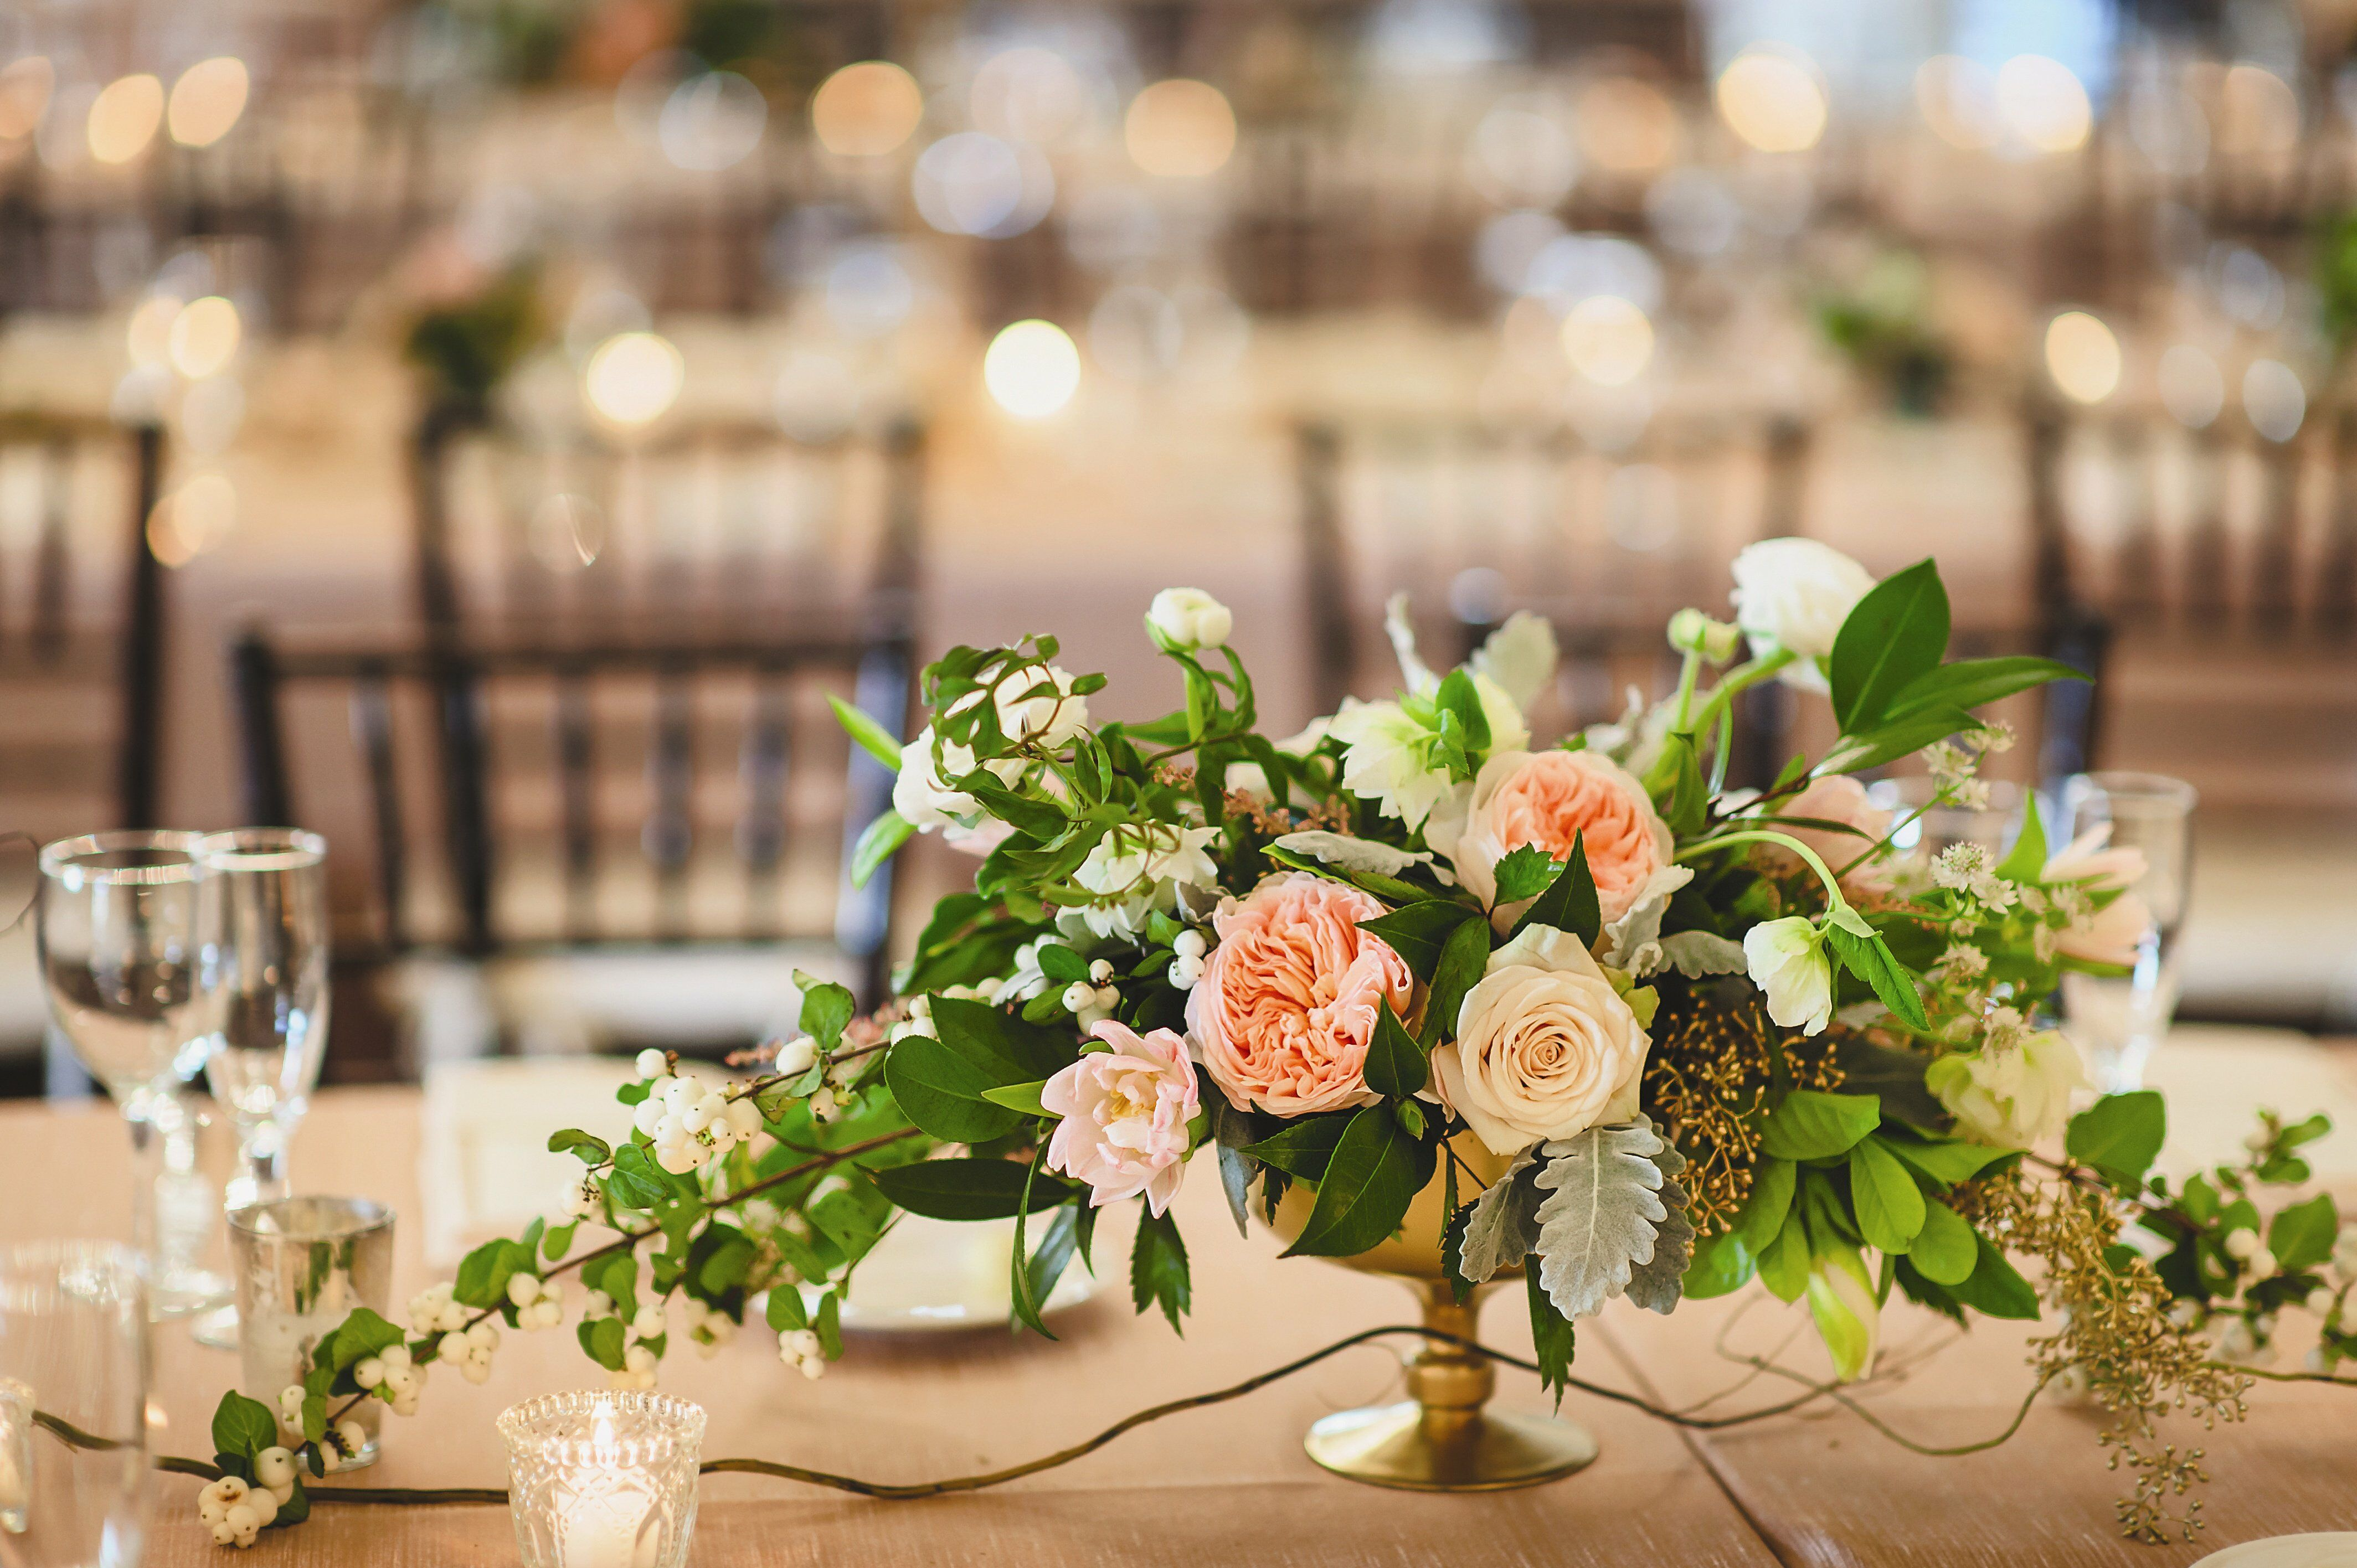 Low lush centerpieces